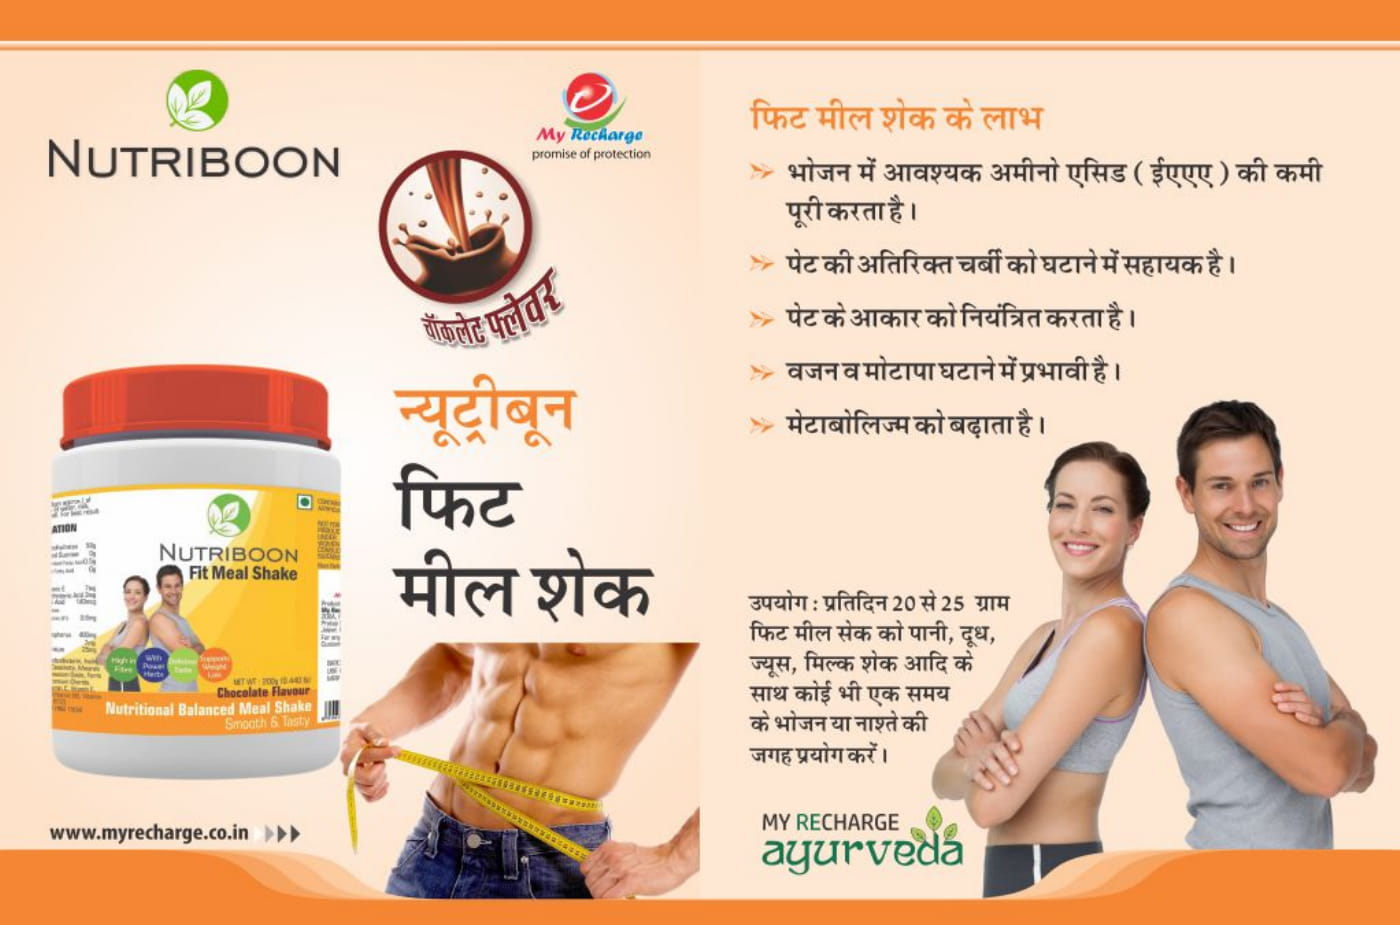 Nutriboon Fit Meal Shake-Myrecharge Ayurveda Product - My